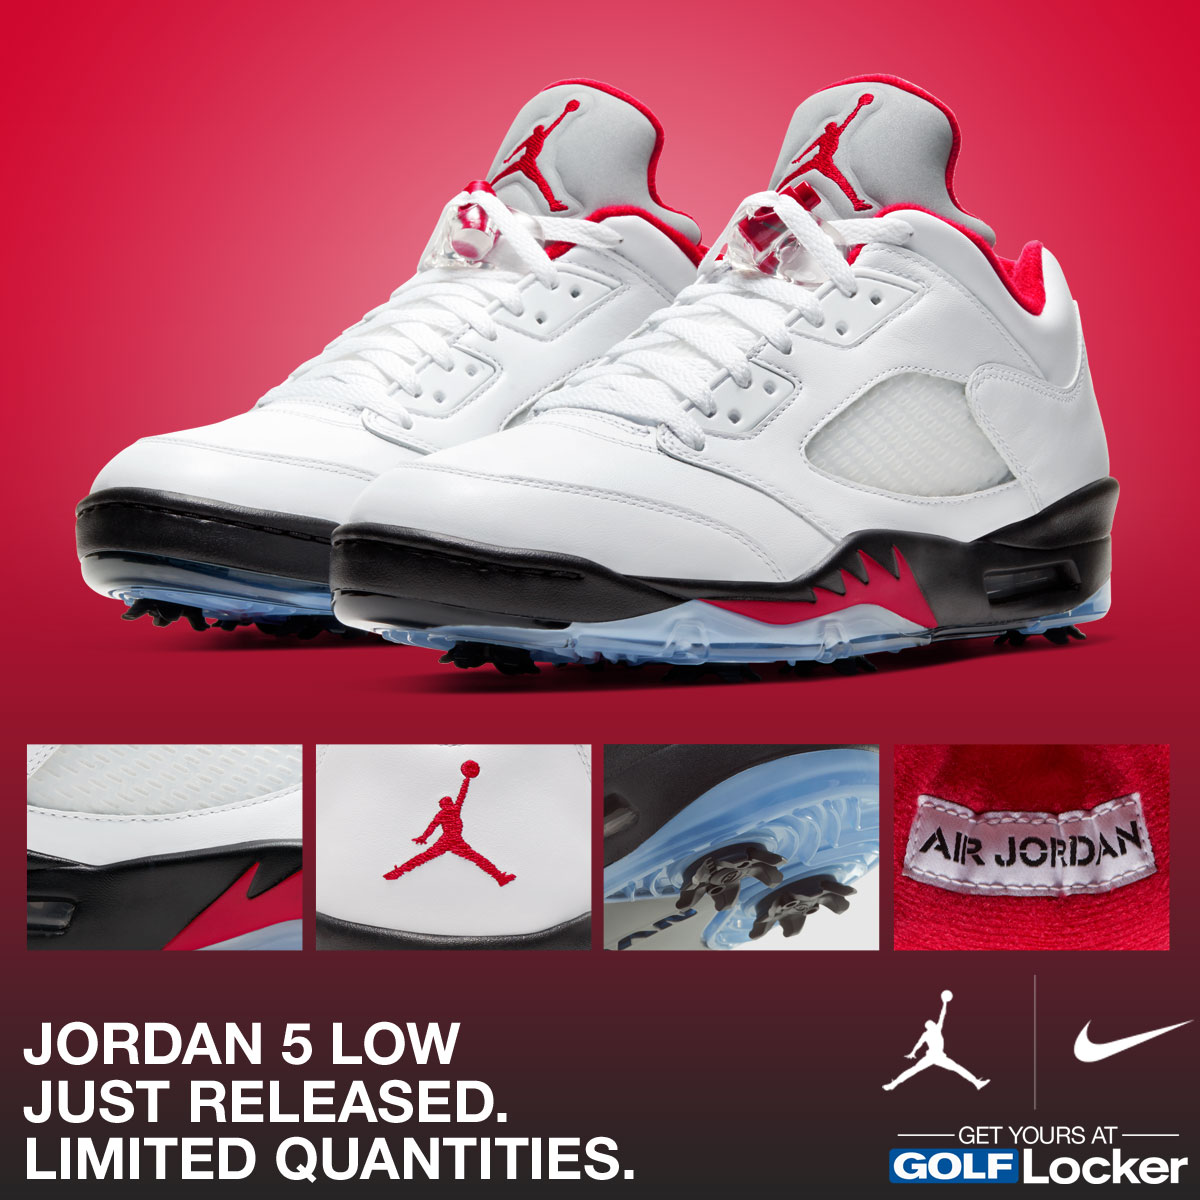 SOLD OUT - Nike Jordan 5 Low Golf Shoes